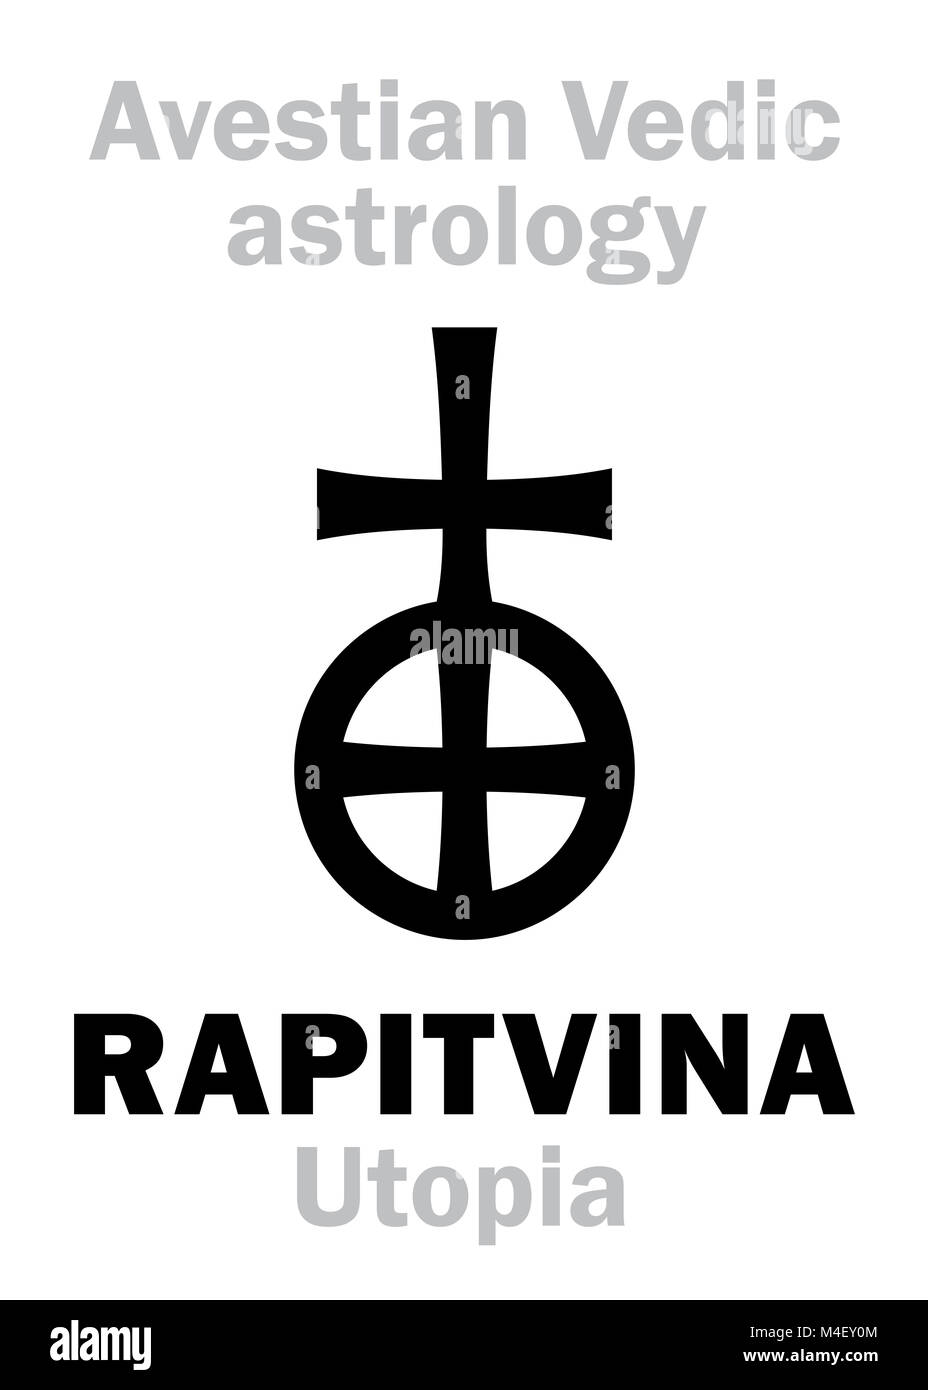 Astrology: astral planet RAPITVINA (Utopia) - Stock Image